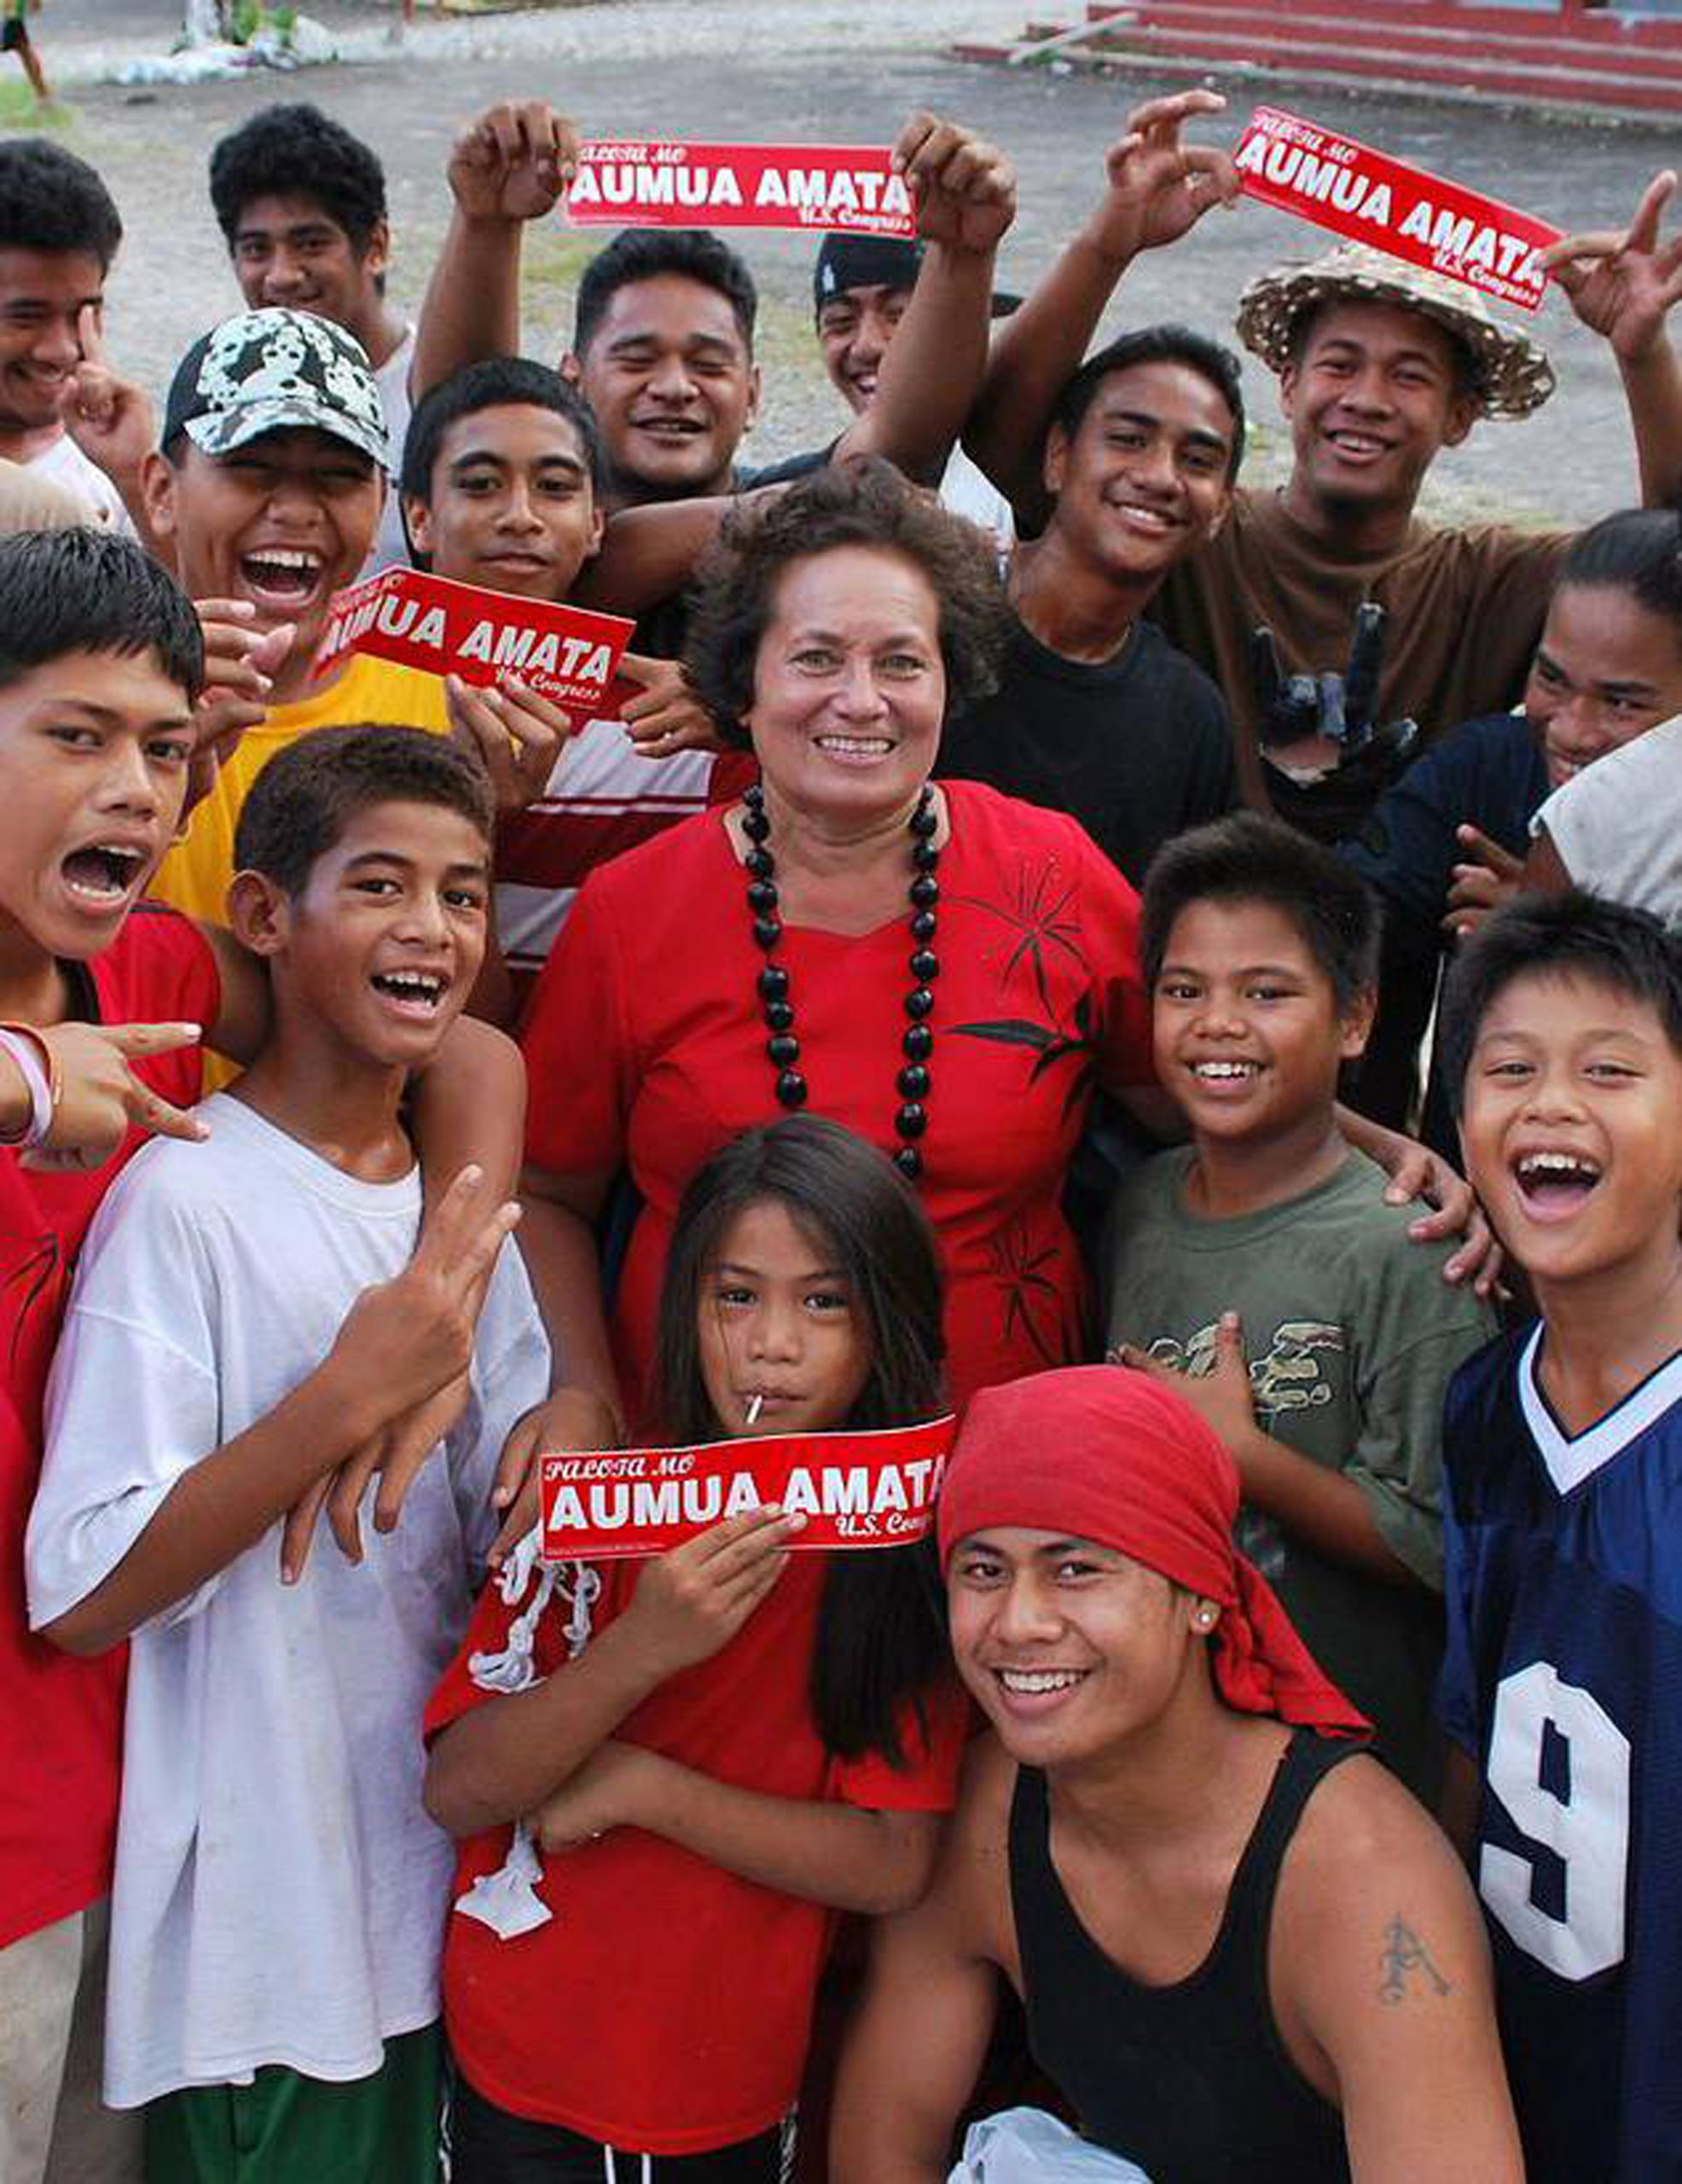 amata with campaigning kids